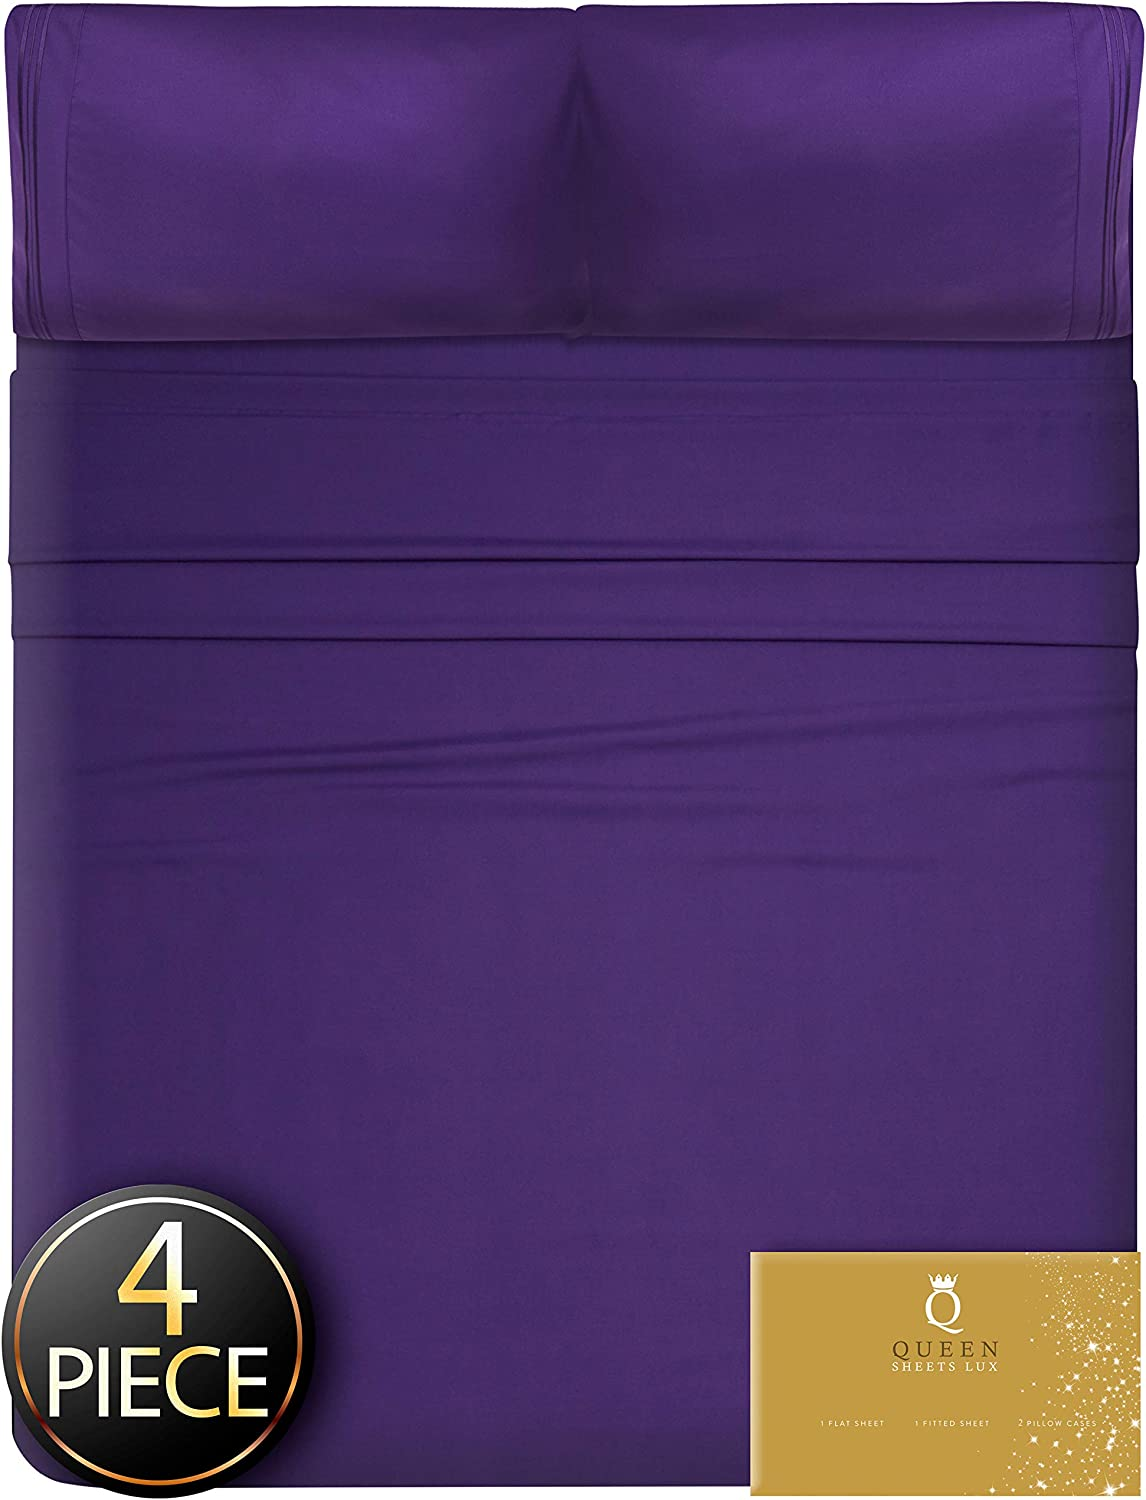 Twin Sheets Twin Size 4 pcs - Twin Bed Sheets Set Twin Sheet Set Twin Bedding Sets Twin Size Sheets Twin Fitted Sheet Twin Sheets Sets Deep Pocket Twin Sheet Sets Twin Flat Sheet Purple